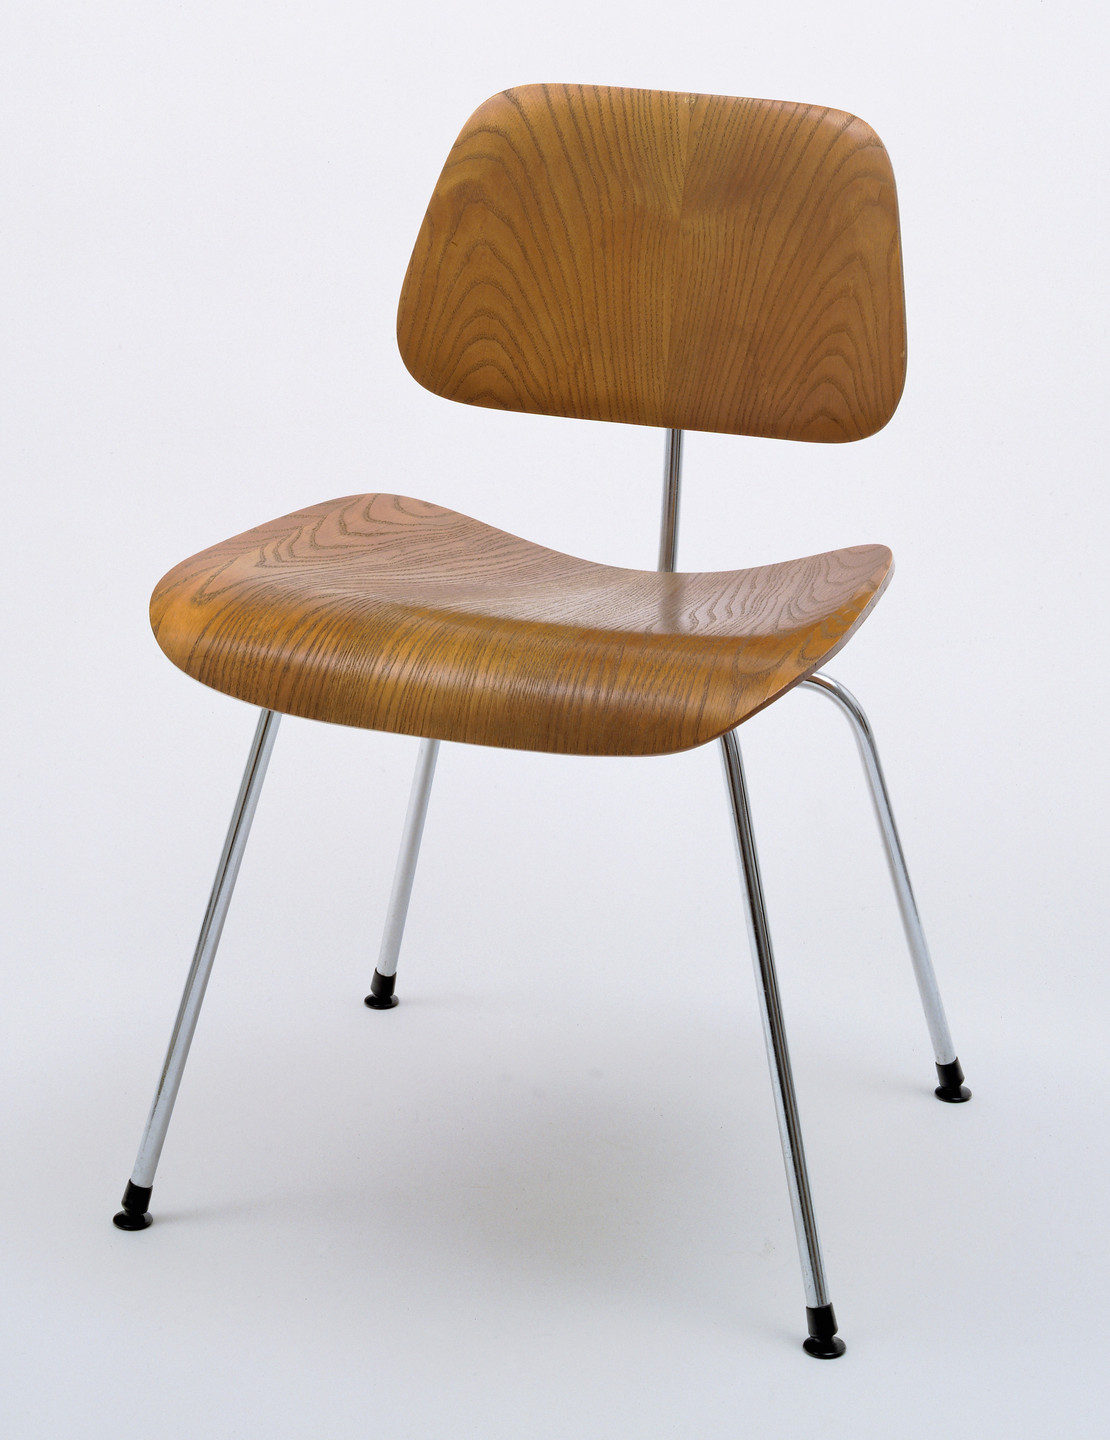 Charles Eames, Ray Eames. Side Chair (model DCM) (Exhibited in the US Pavilion in the 1951 Milan Triennale). 1946